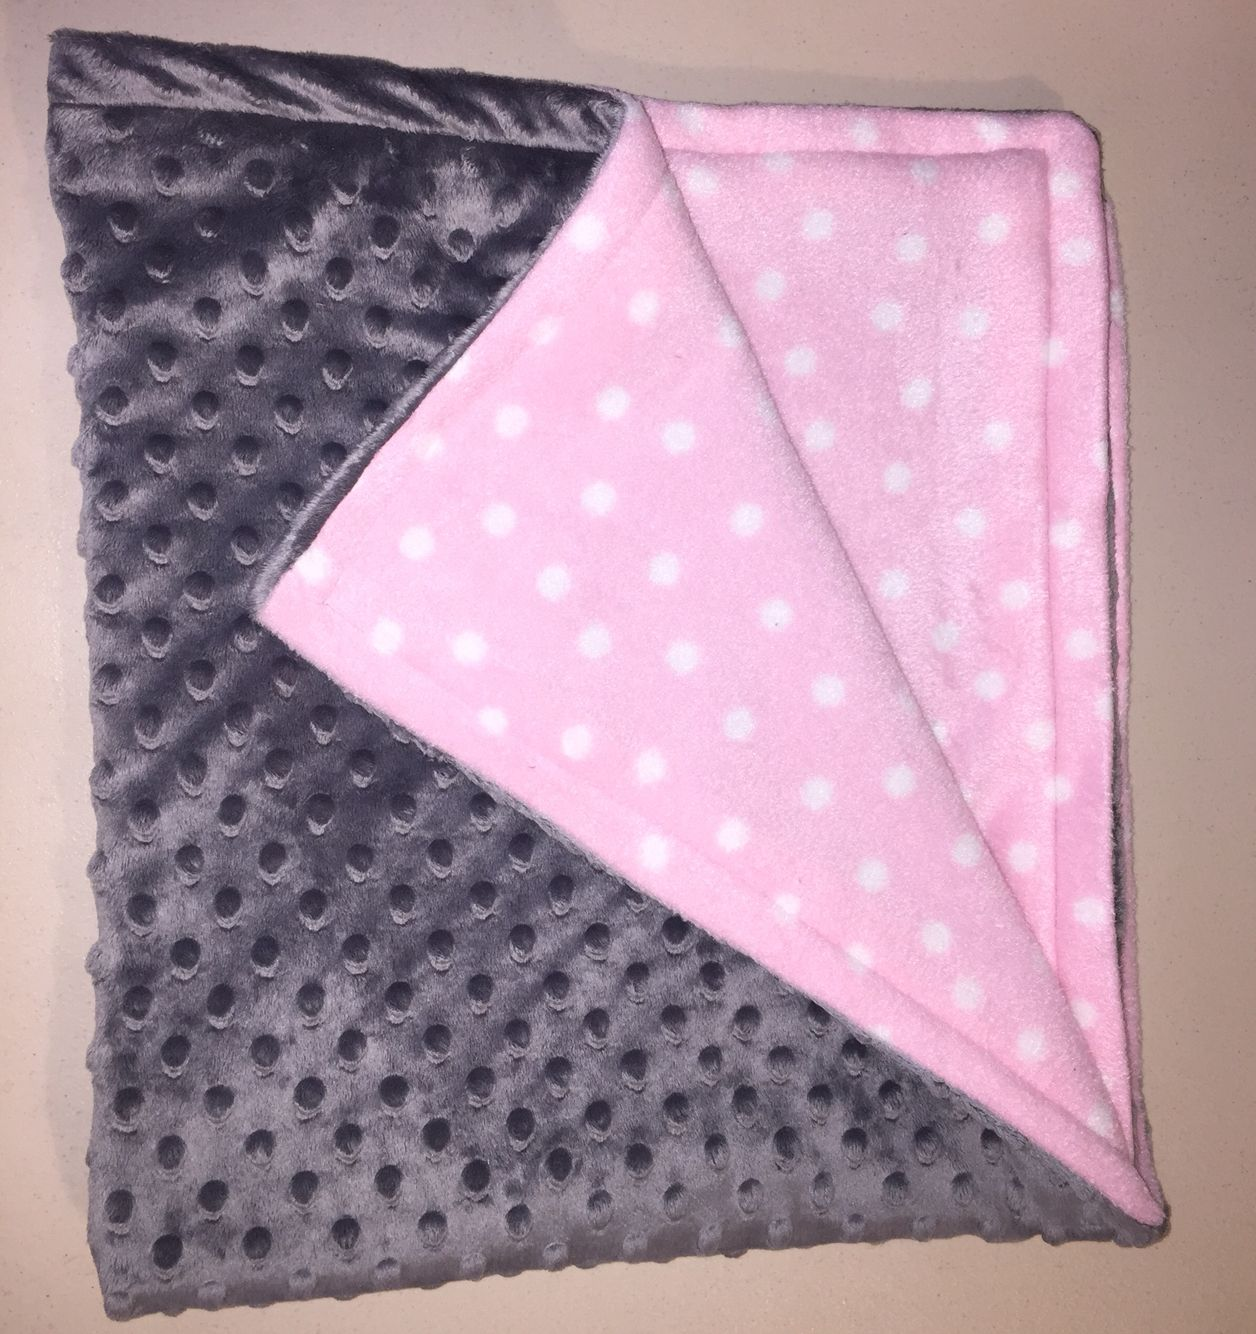 Minky and fleece baby blanket made with help from my year old